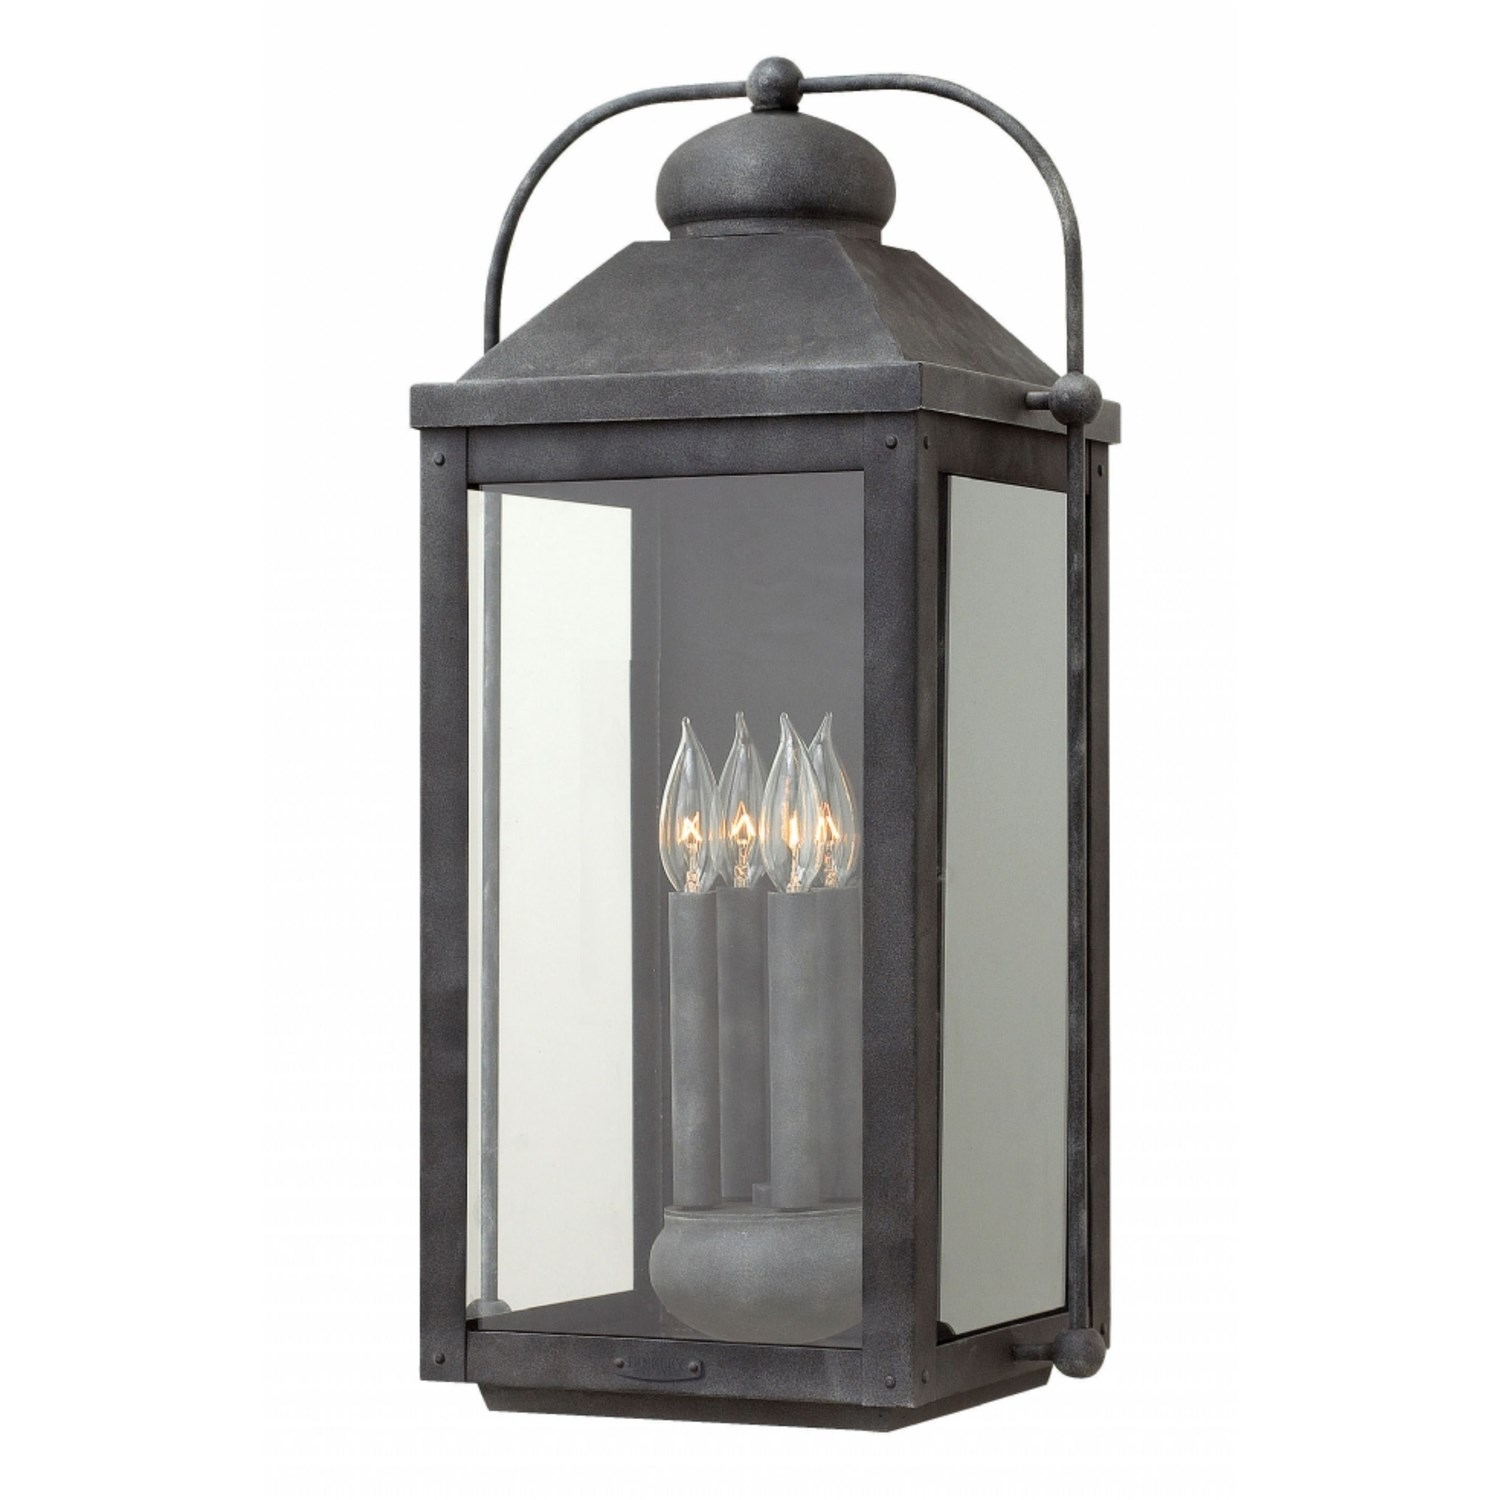 Popular Photo of Extra Large Wall Mount Porch Hinkley Lighting